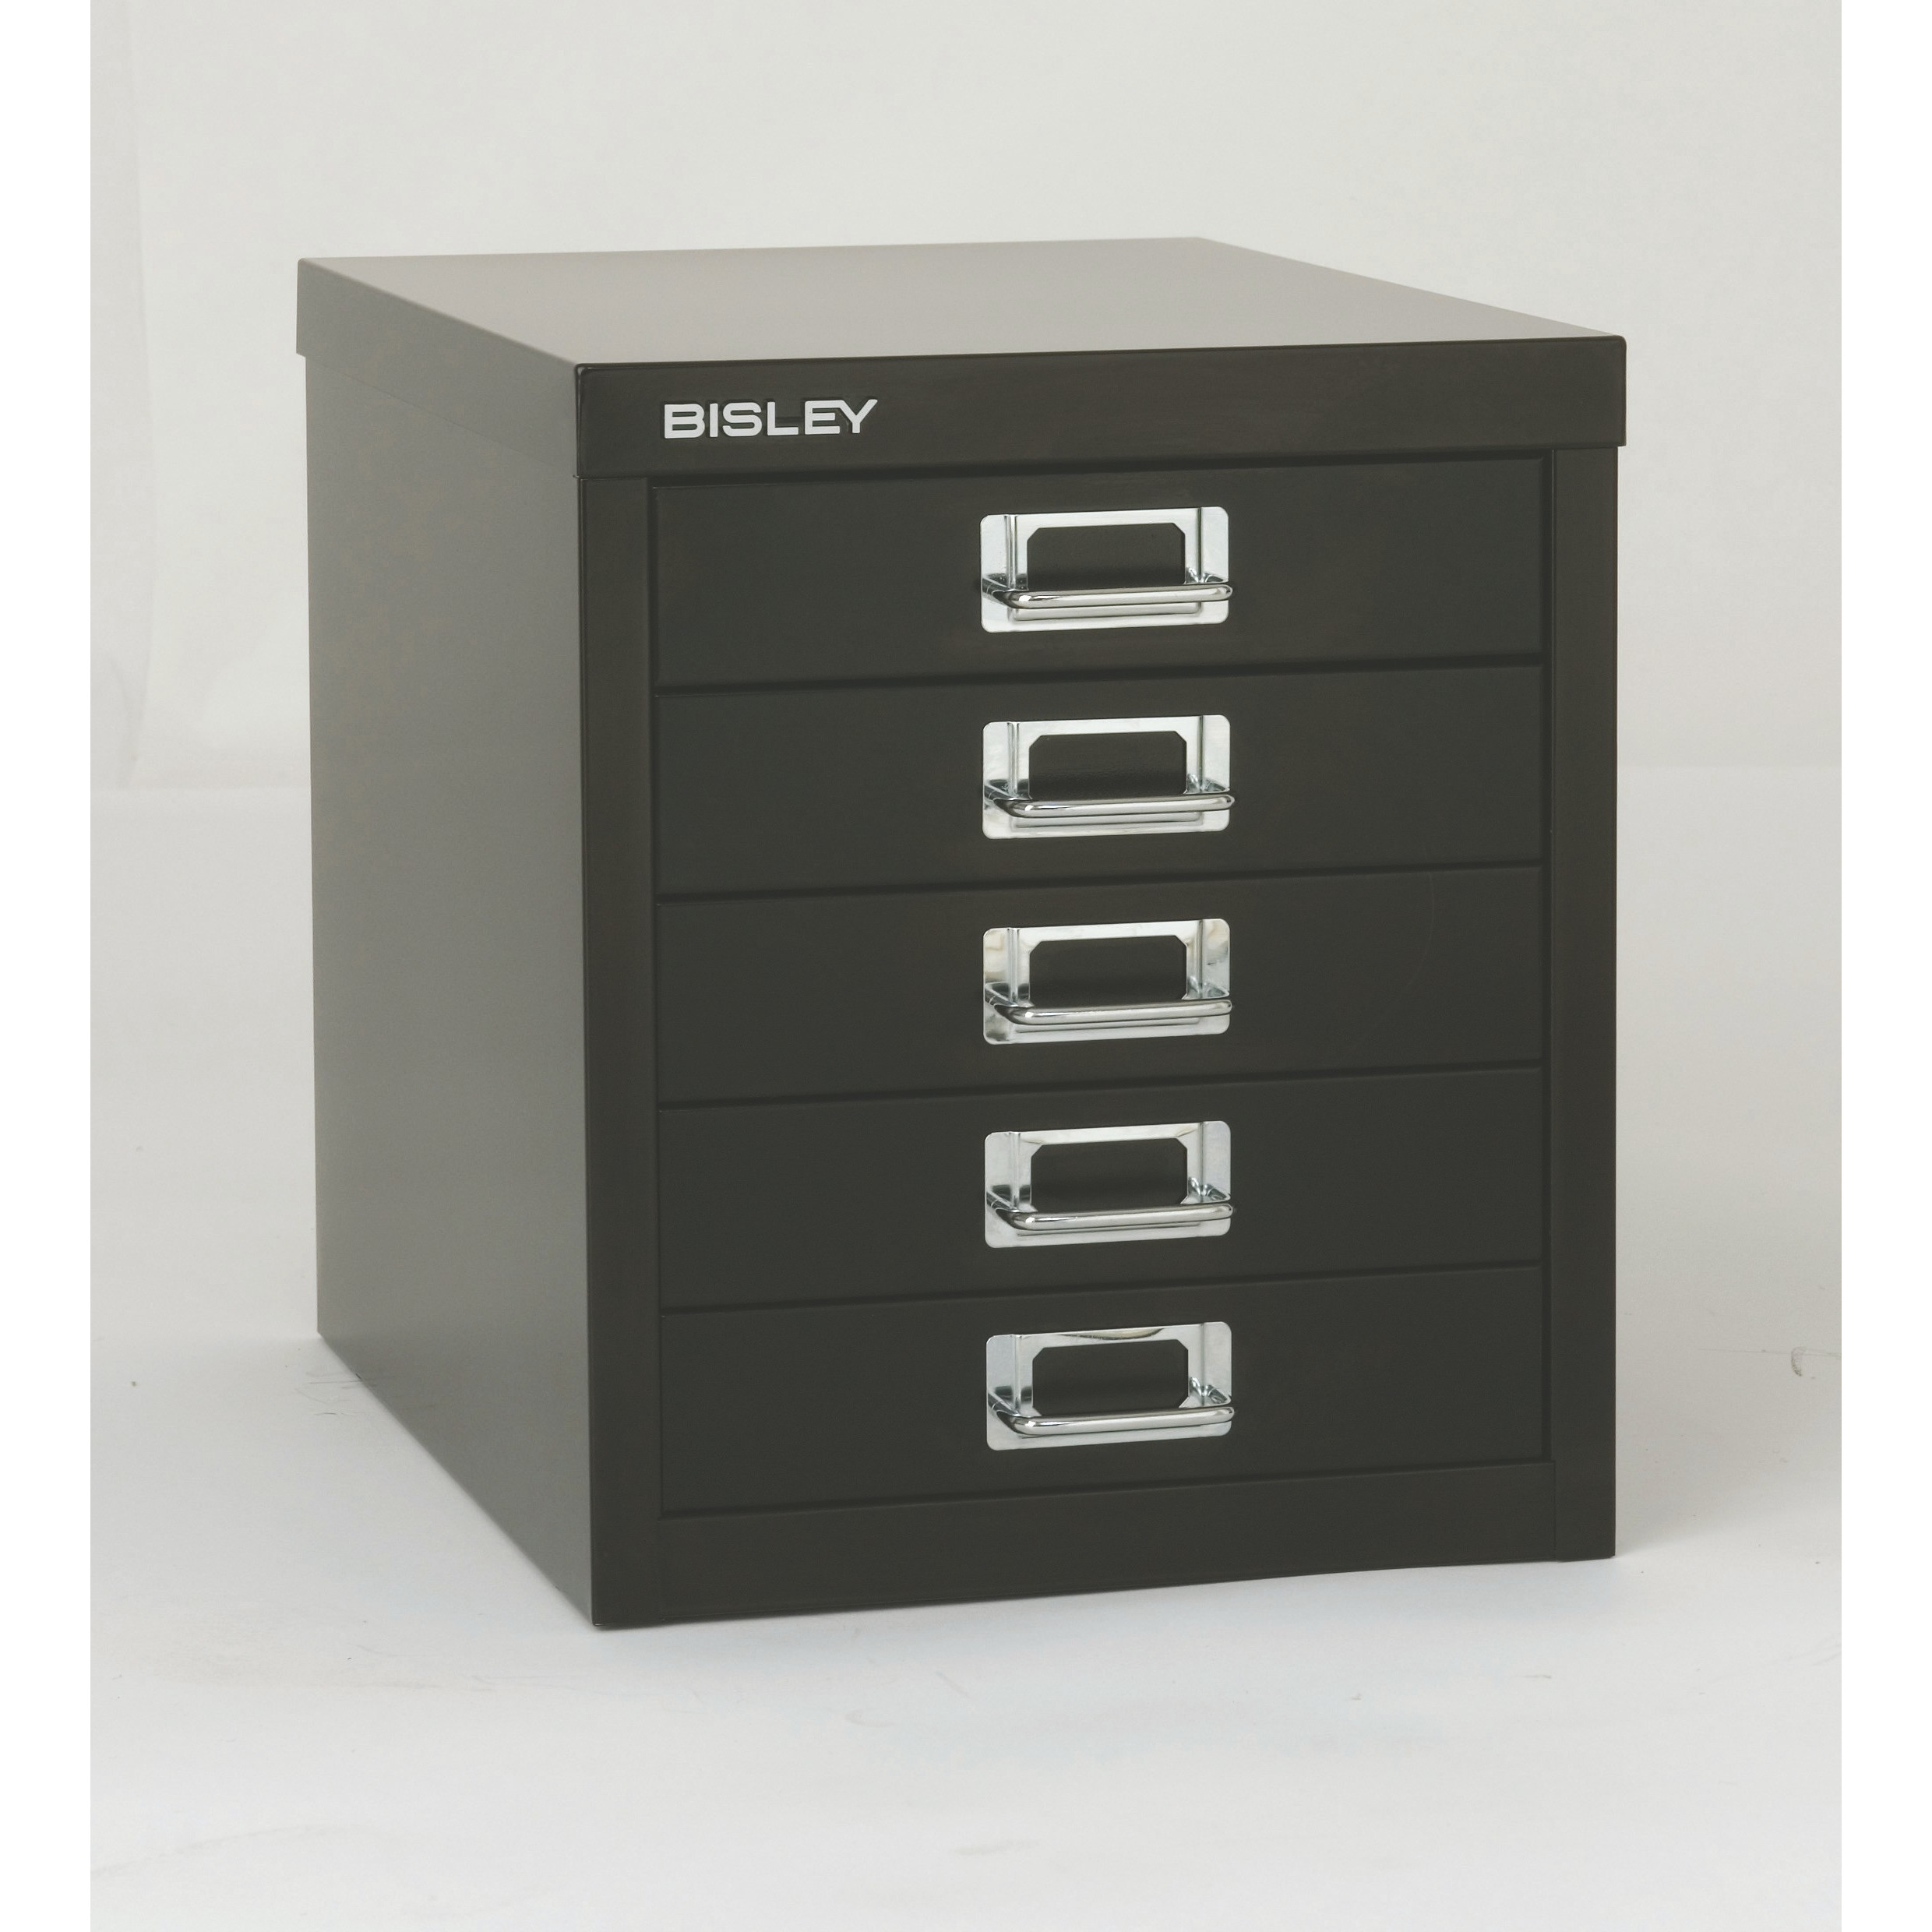 Brilliant fireproof filing cabinets for office furniture ideas with fireproof file cabinets